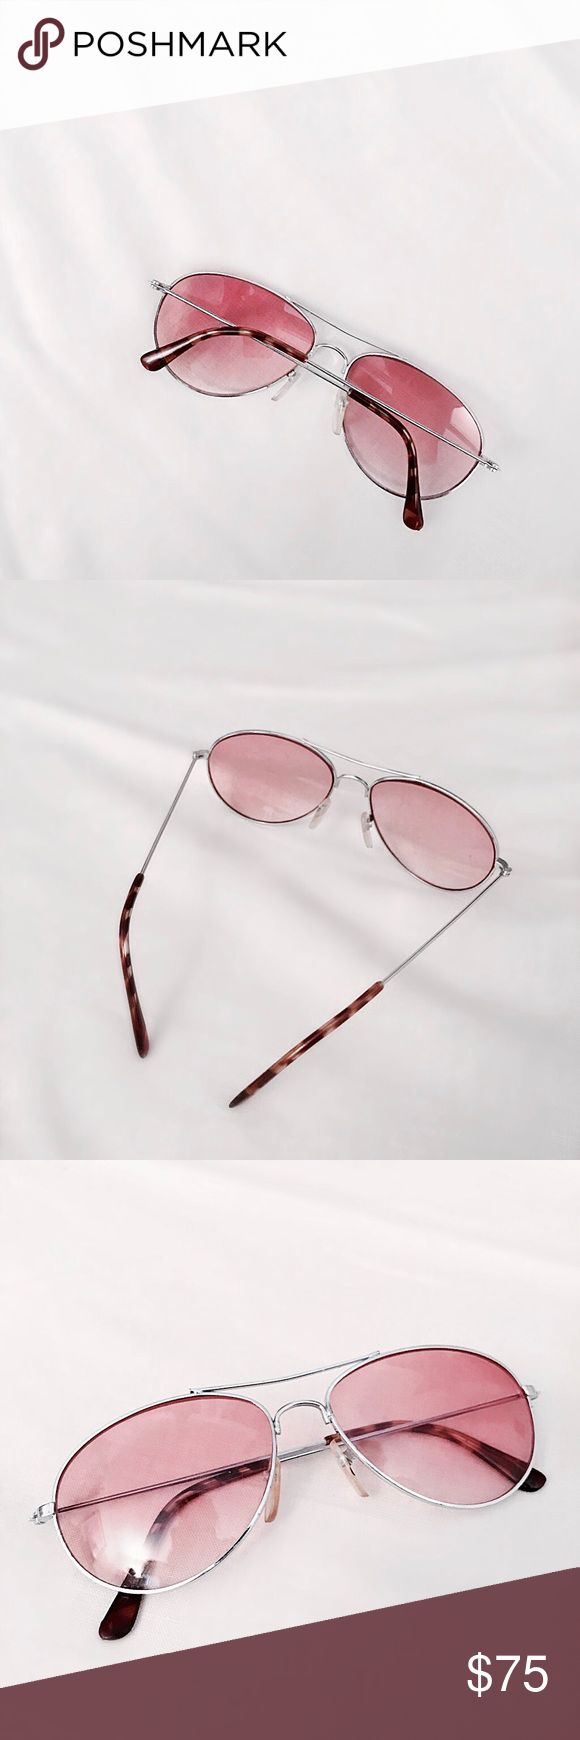 Authentic '70s Rose Candy Aviators Real vintage aviators from the 70s with rosy pink tinted lenses. Silver frames and tortoiseshell accents. Kept in great condition with light wear. Approx value $150. -OLIVIA CHENG CURATED VINTAGE- Vintage Accessories Sunglasses